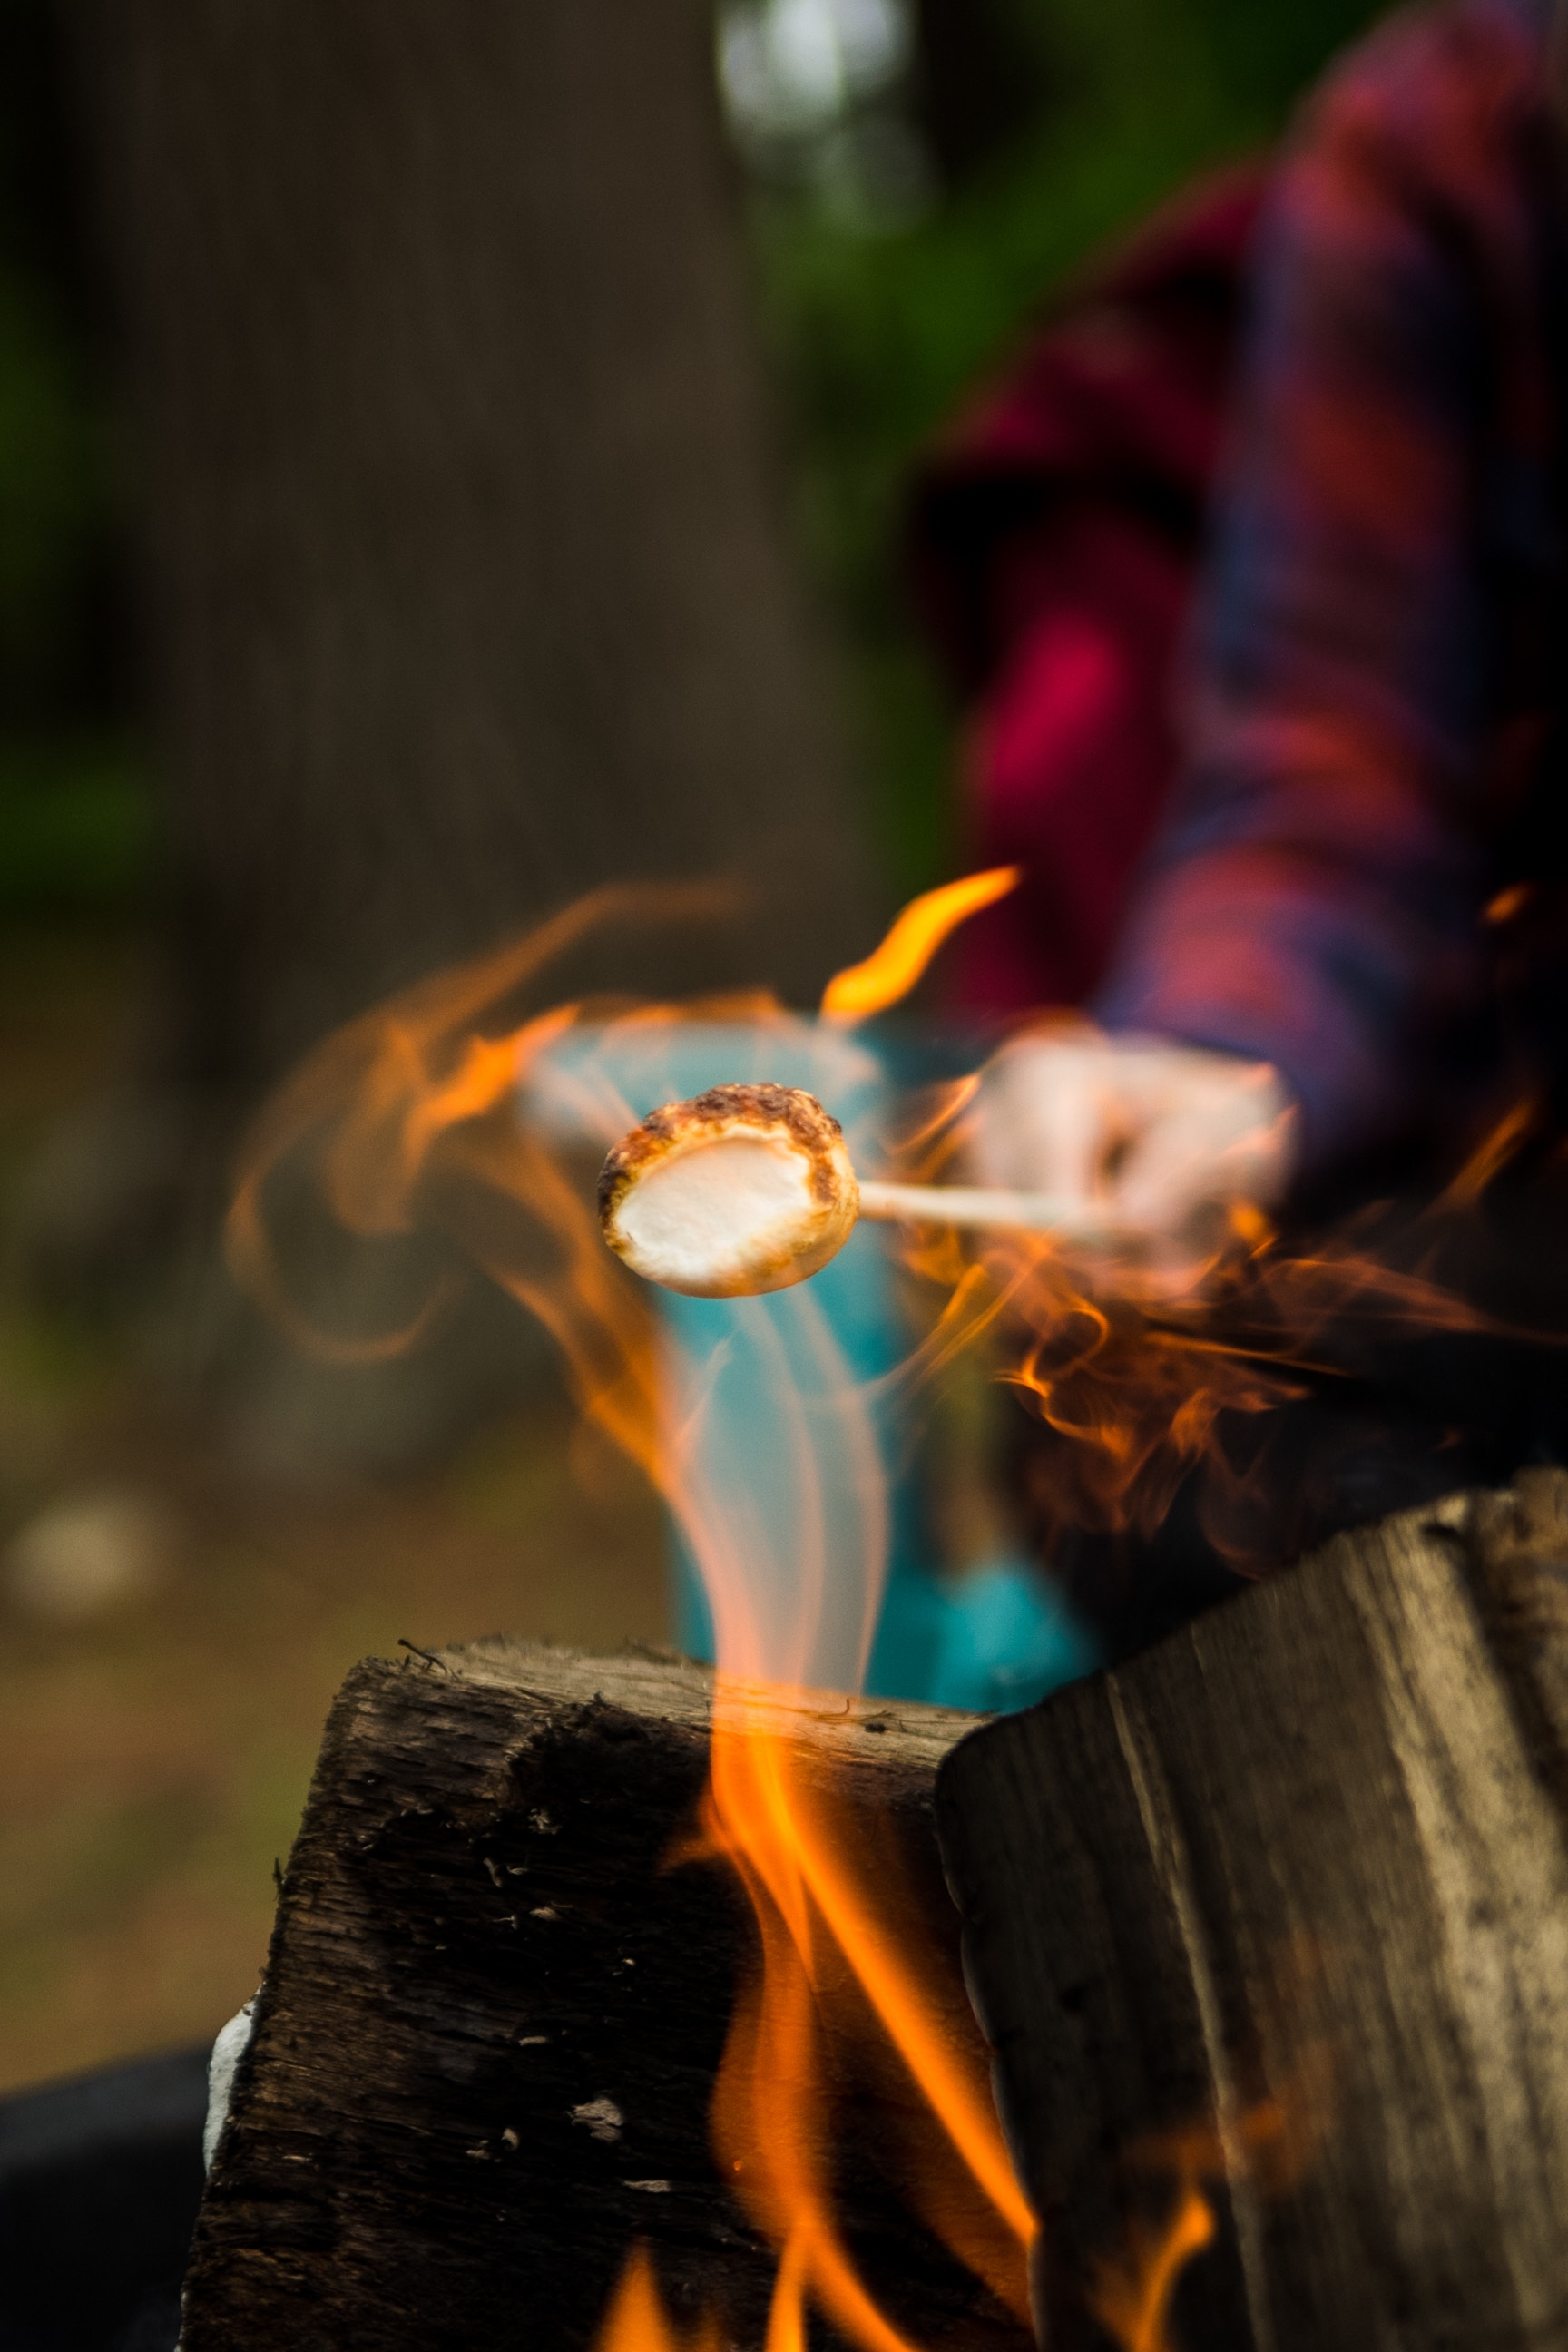 hanna morris 278272 unsplash firepit fellowship